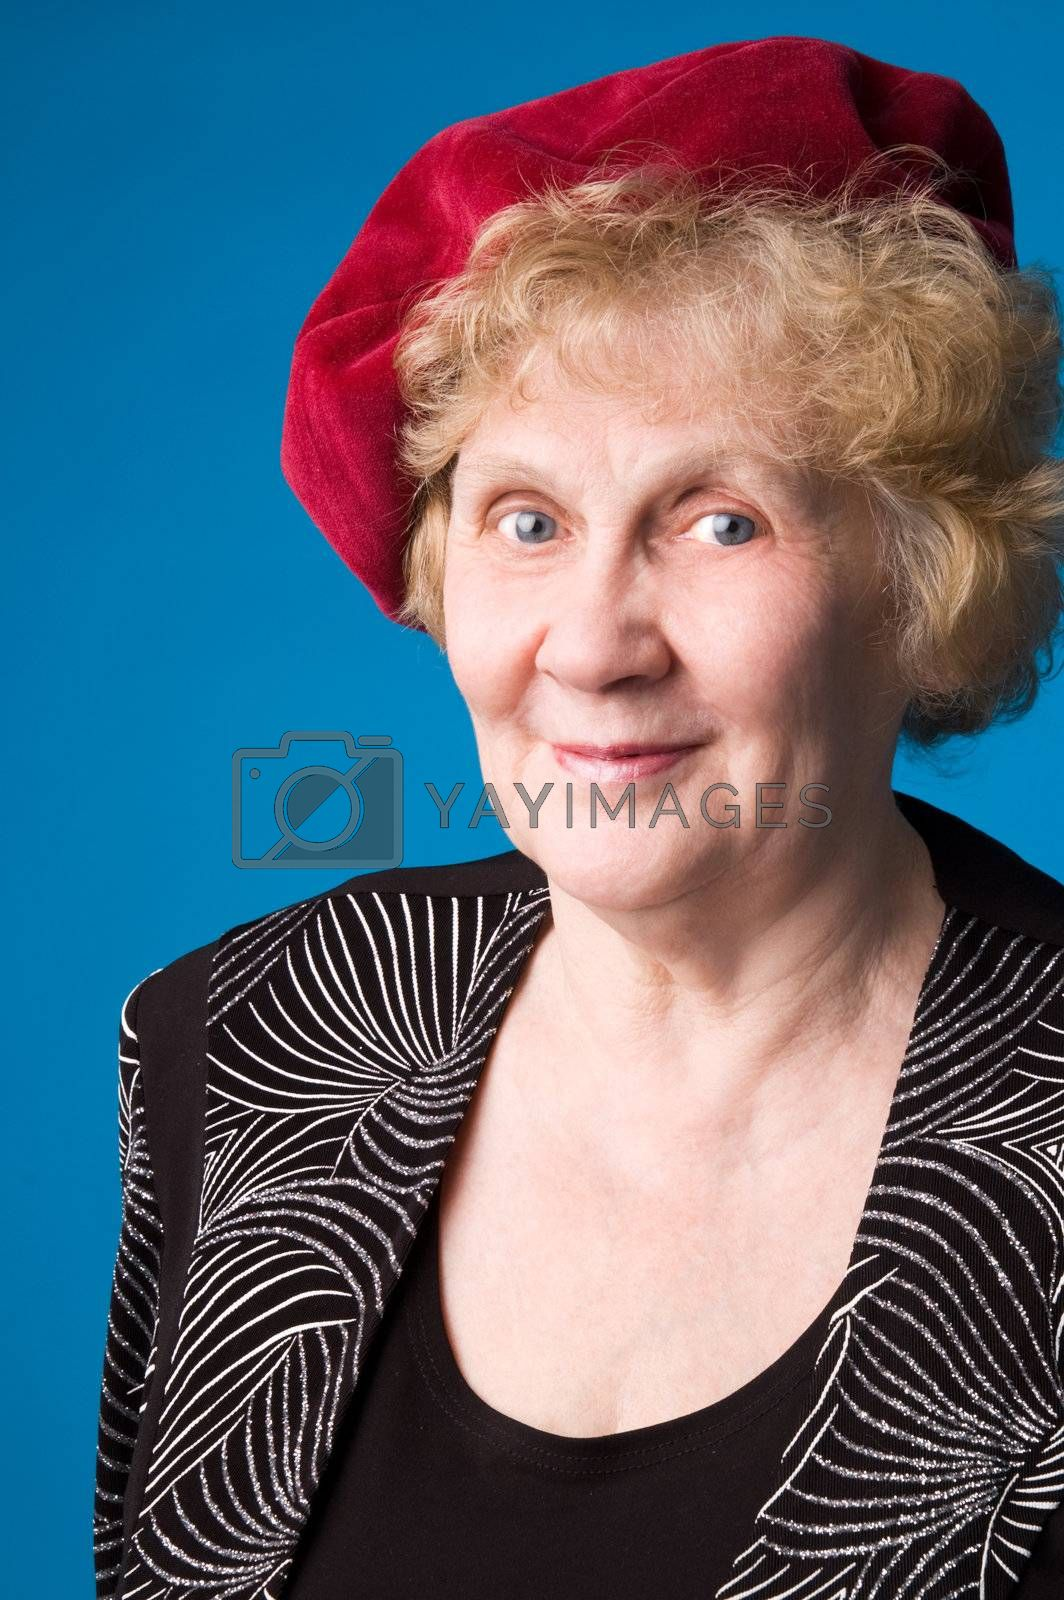 The cheerful elderly woman in red beret on a blue background.